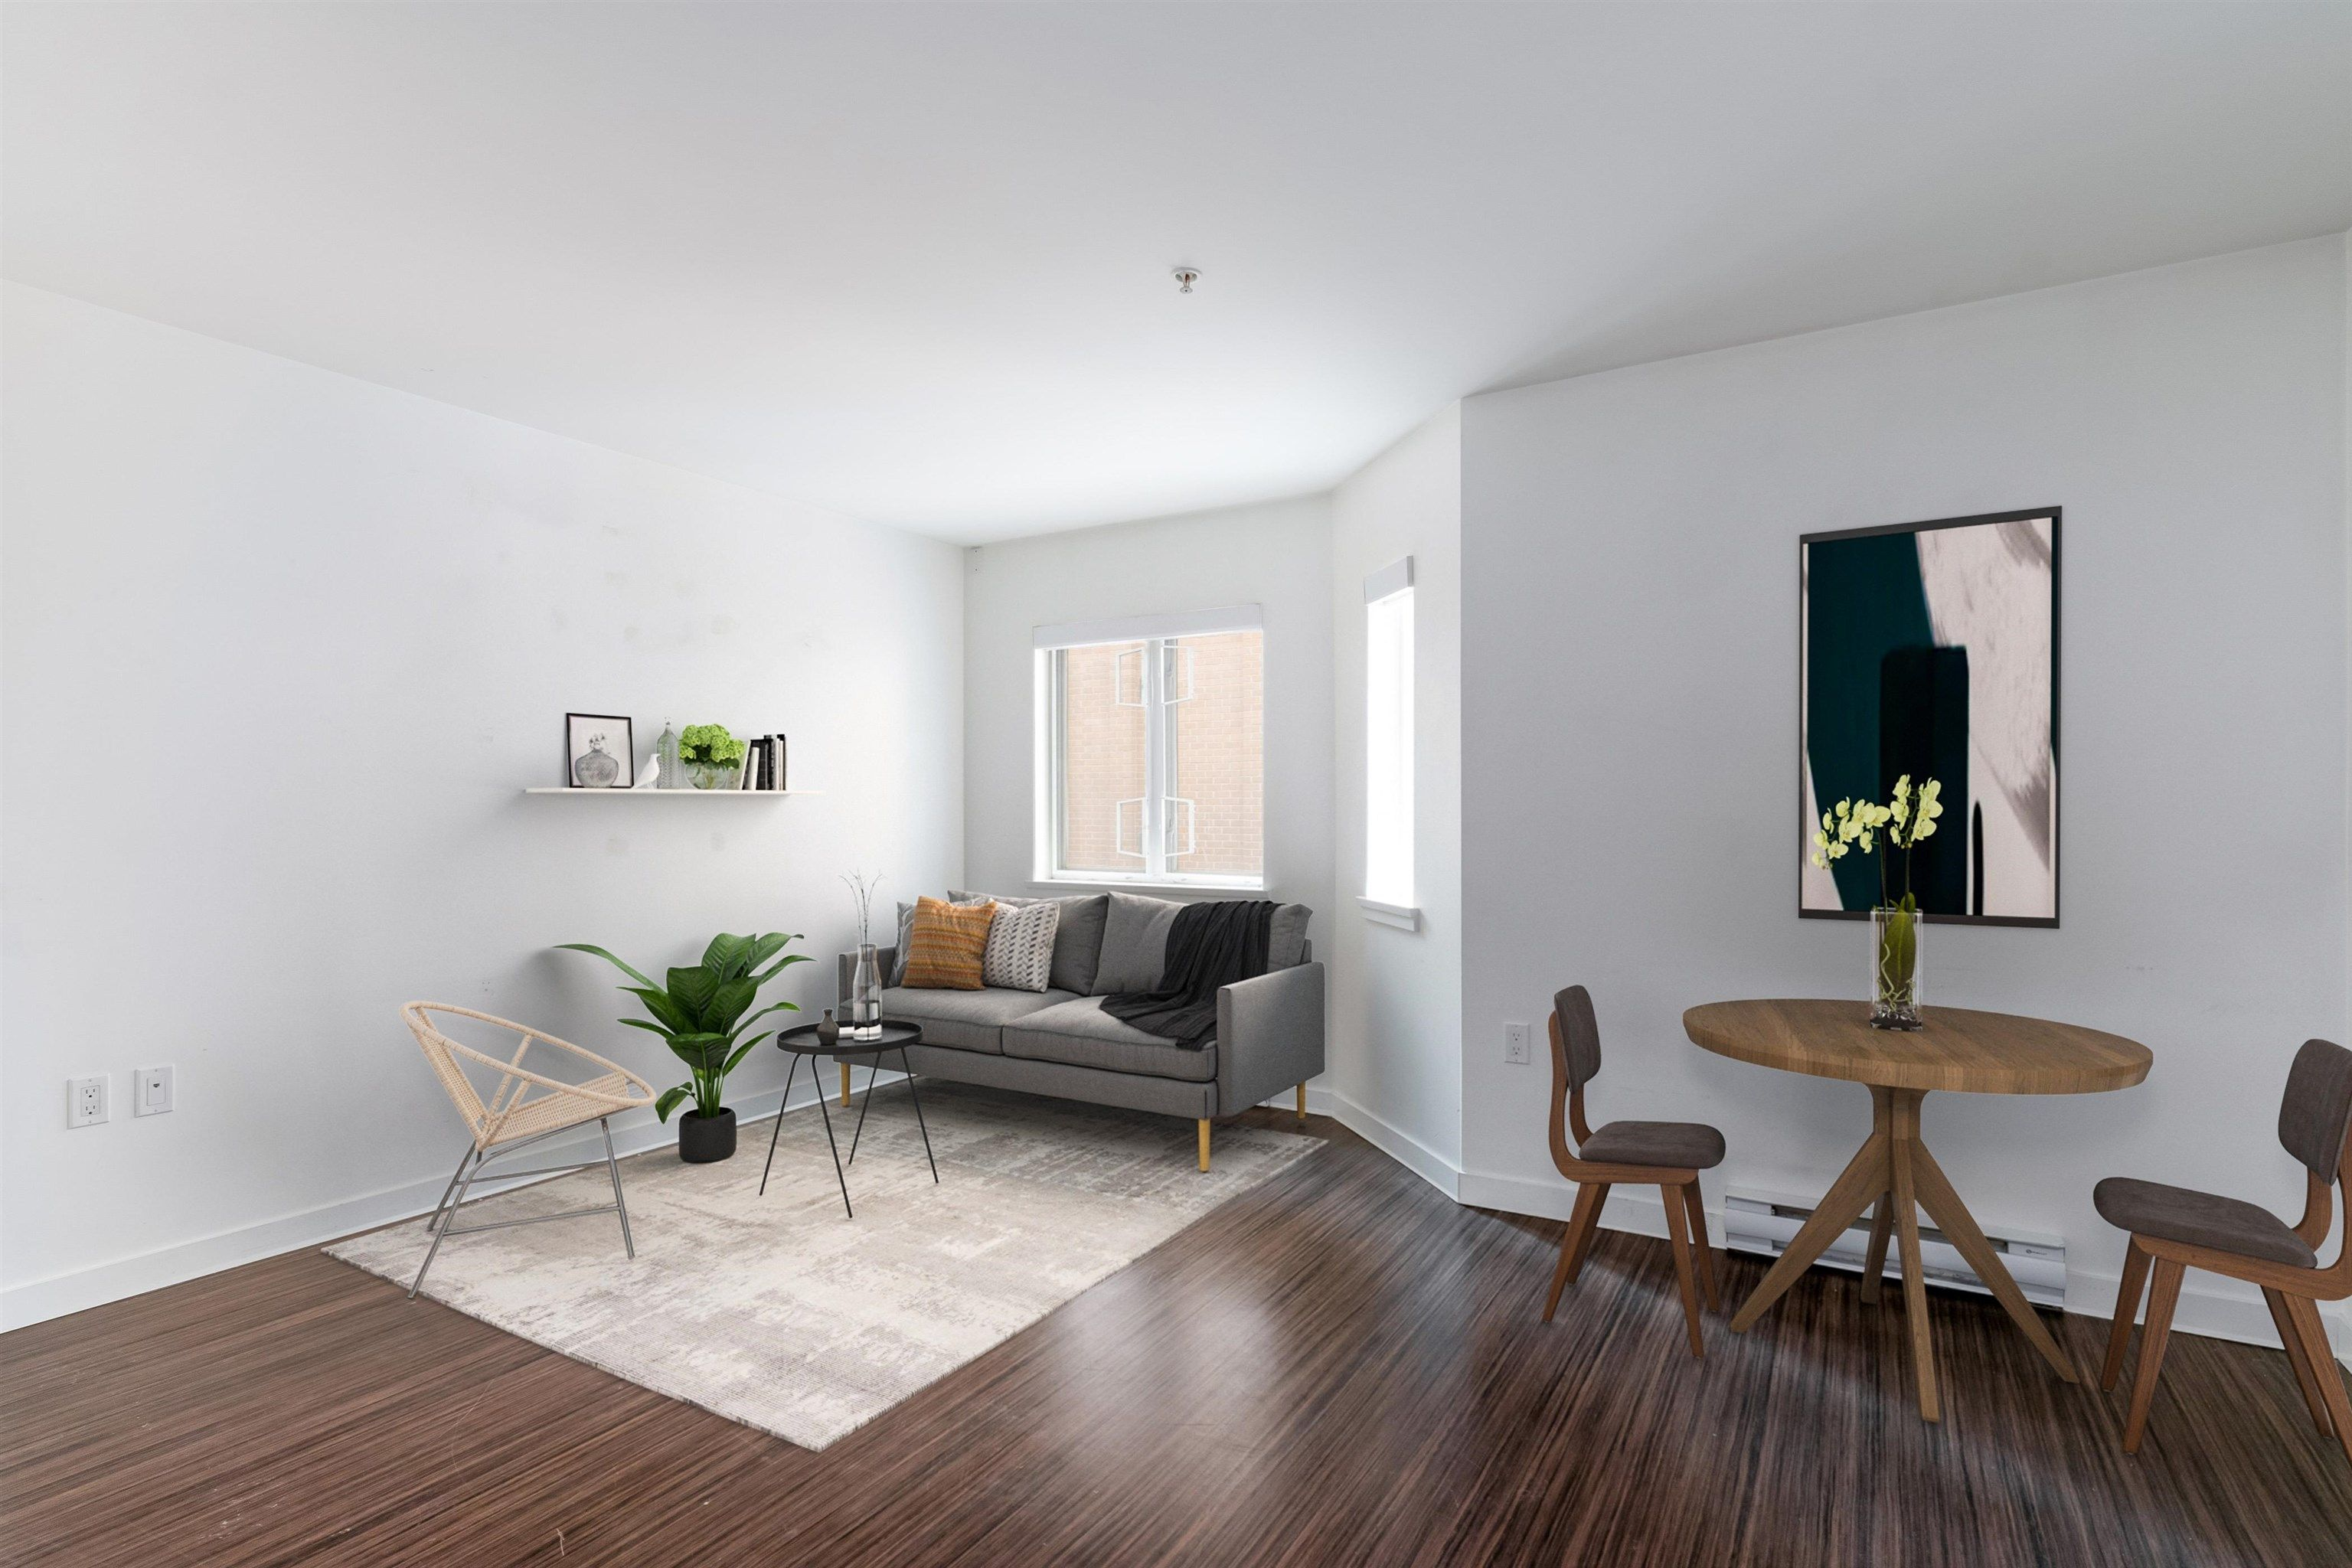 """Main Photo: 207 370 CARRALL Street in Vancouver: Downtown VE Condo for sale in """"21 Doors"""" (Vancouver East)  : MLS®# R2625412"""